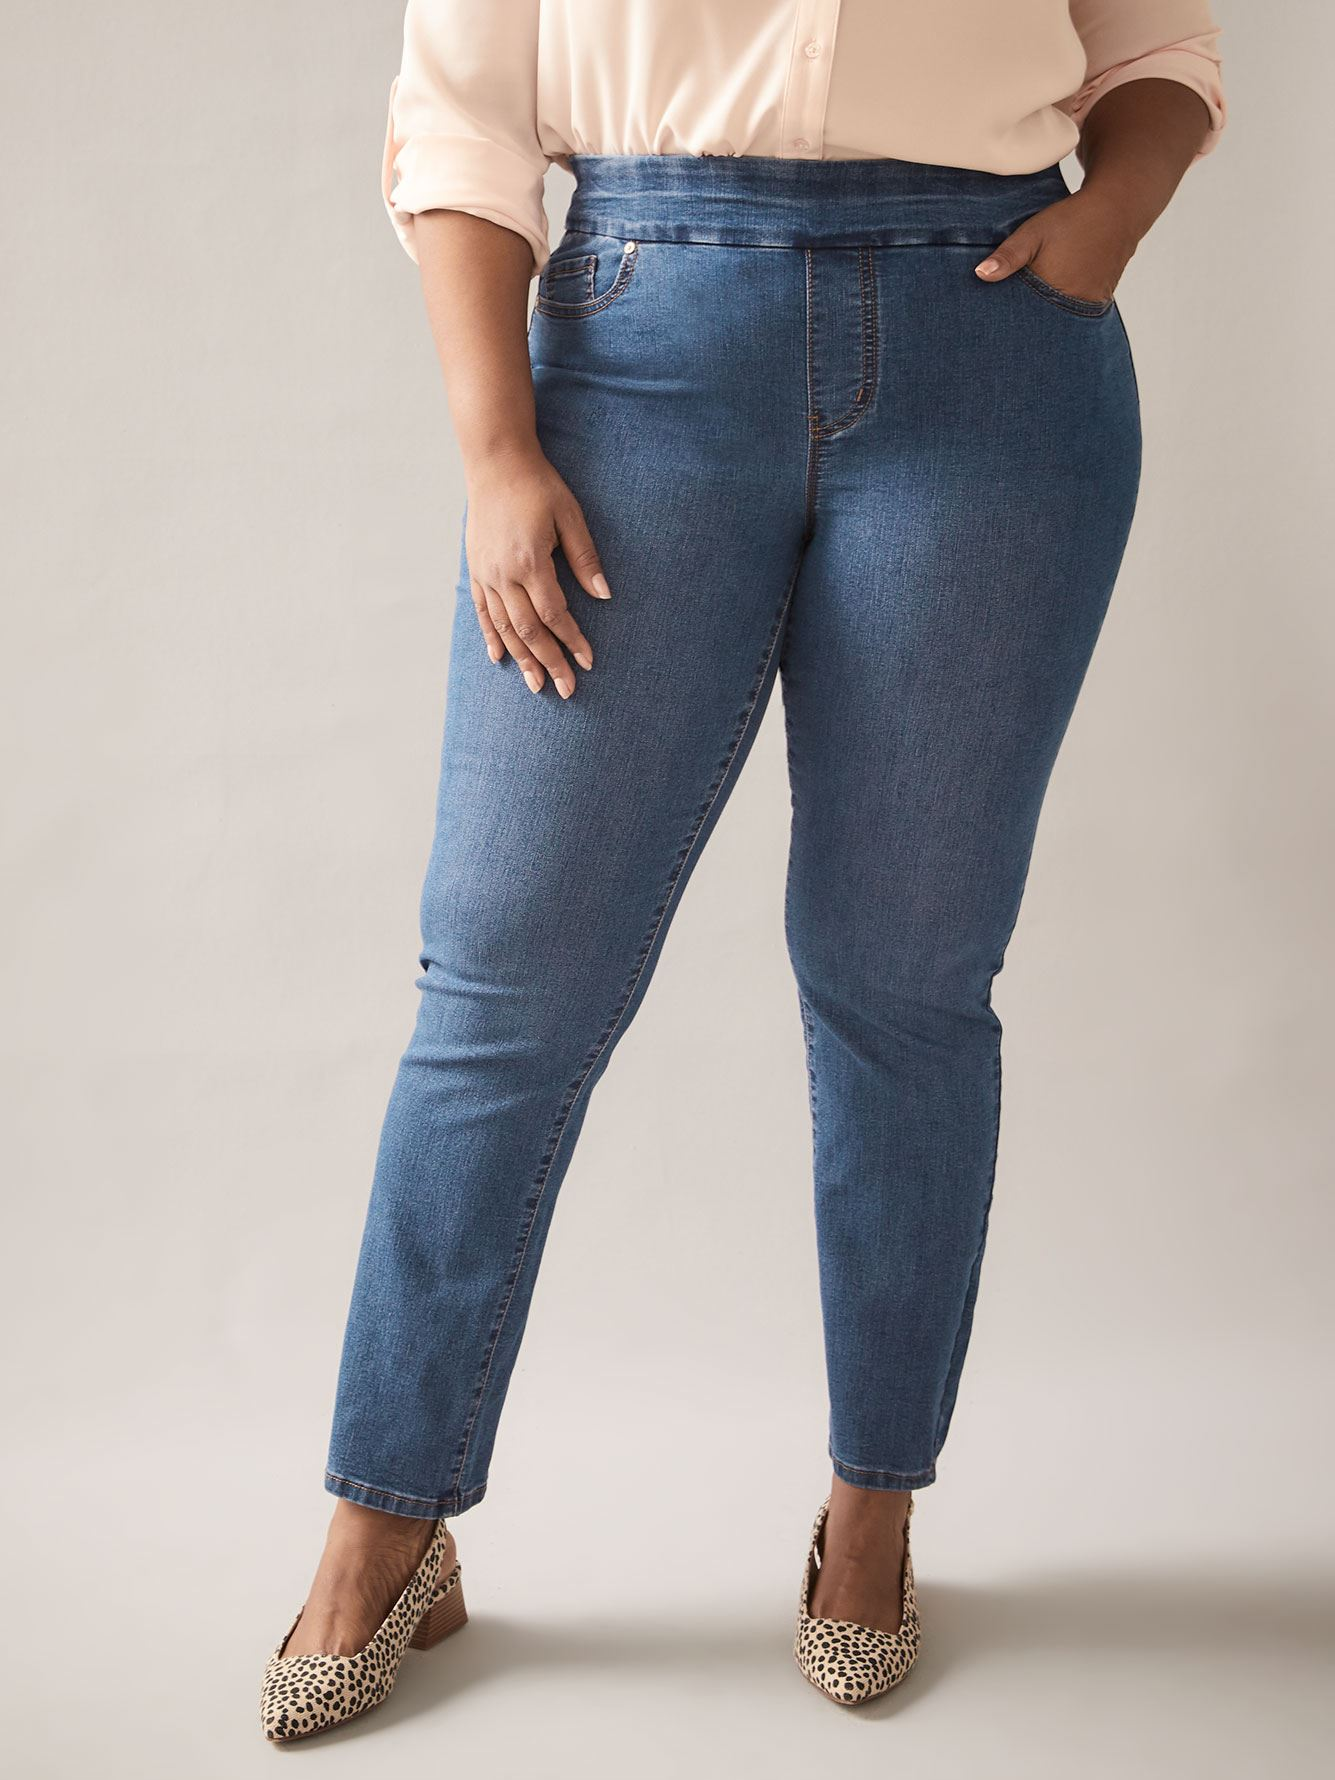 Savvy Fit, Straight Leg Blue Jeans - In Every Story